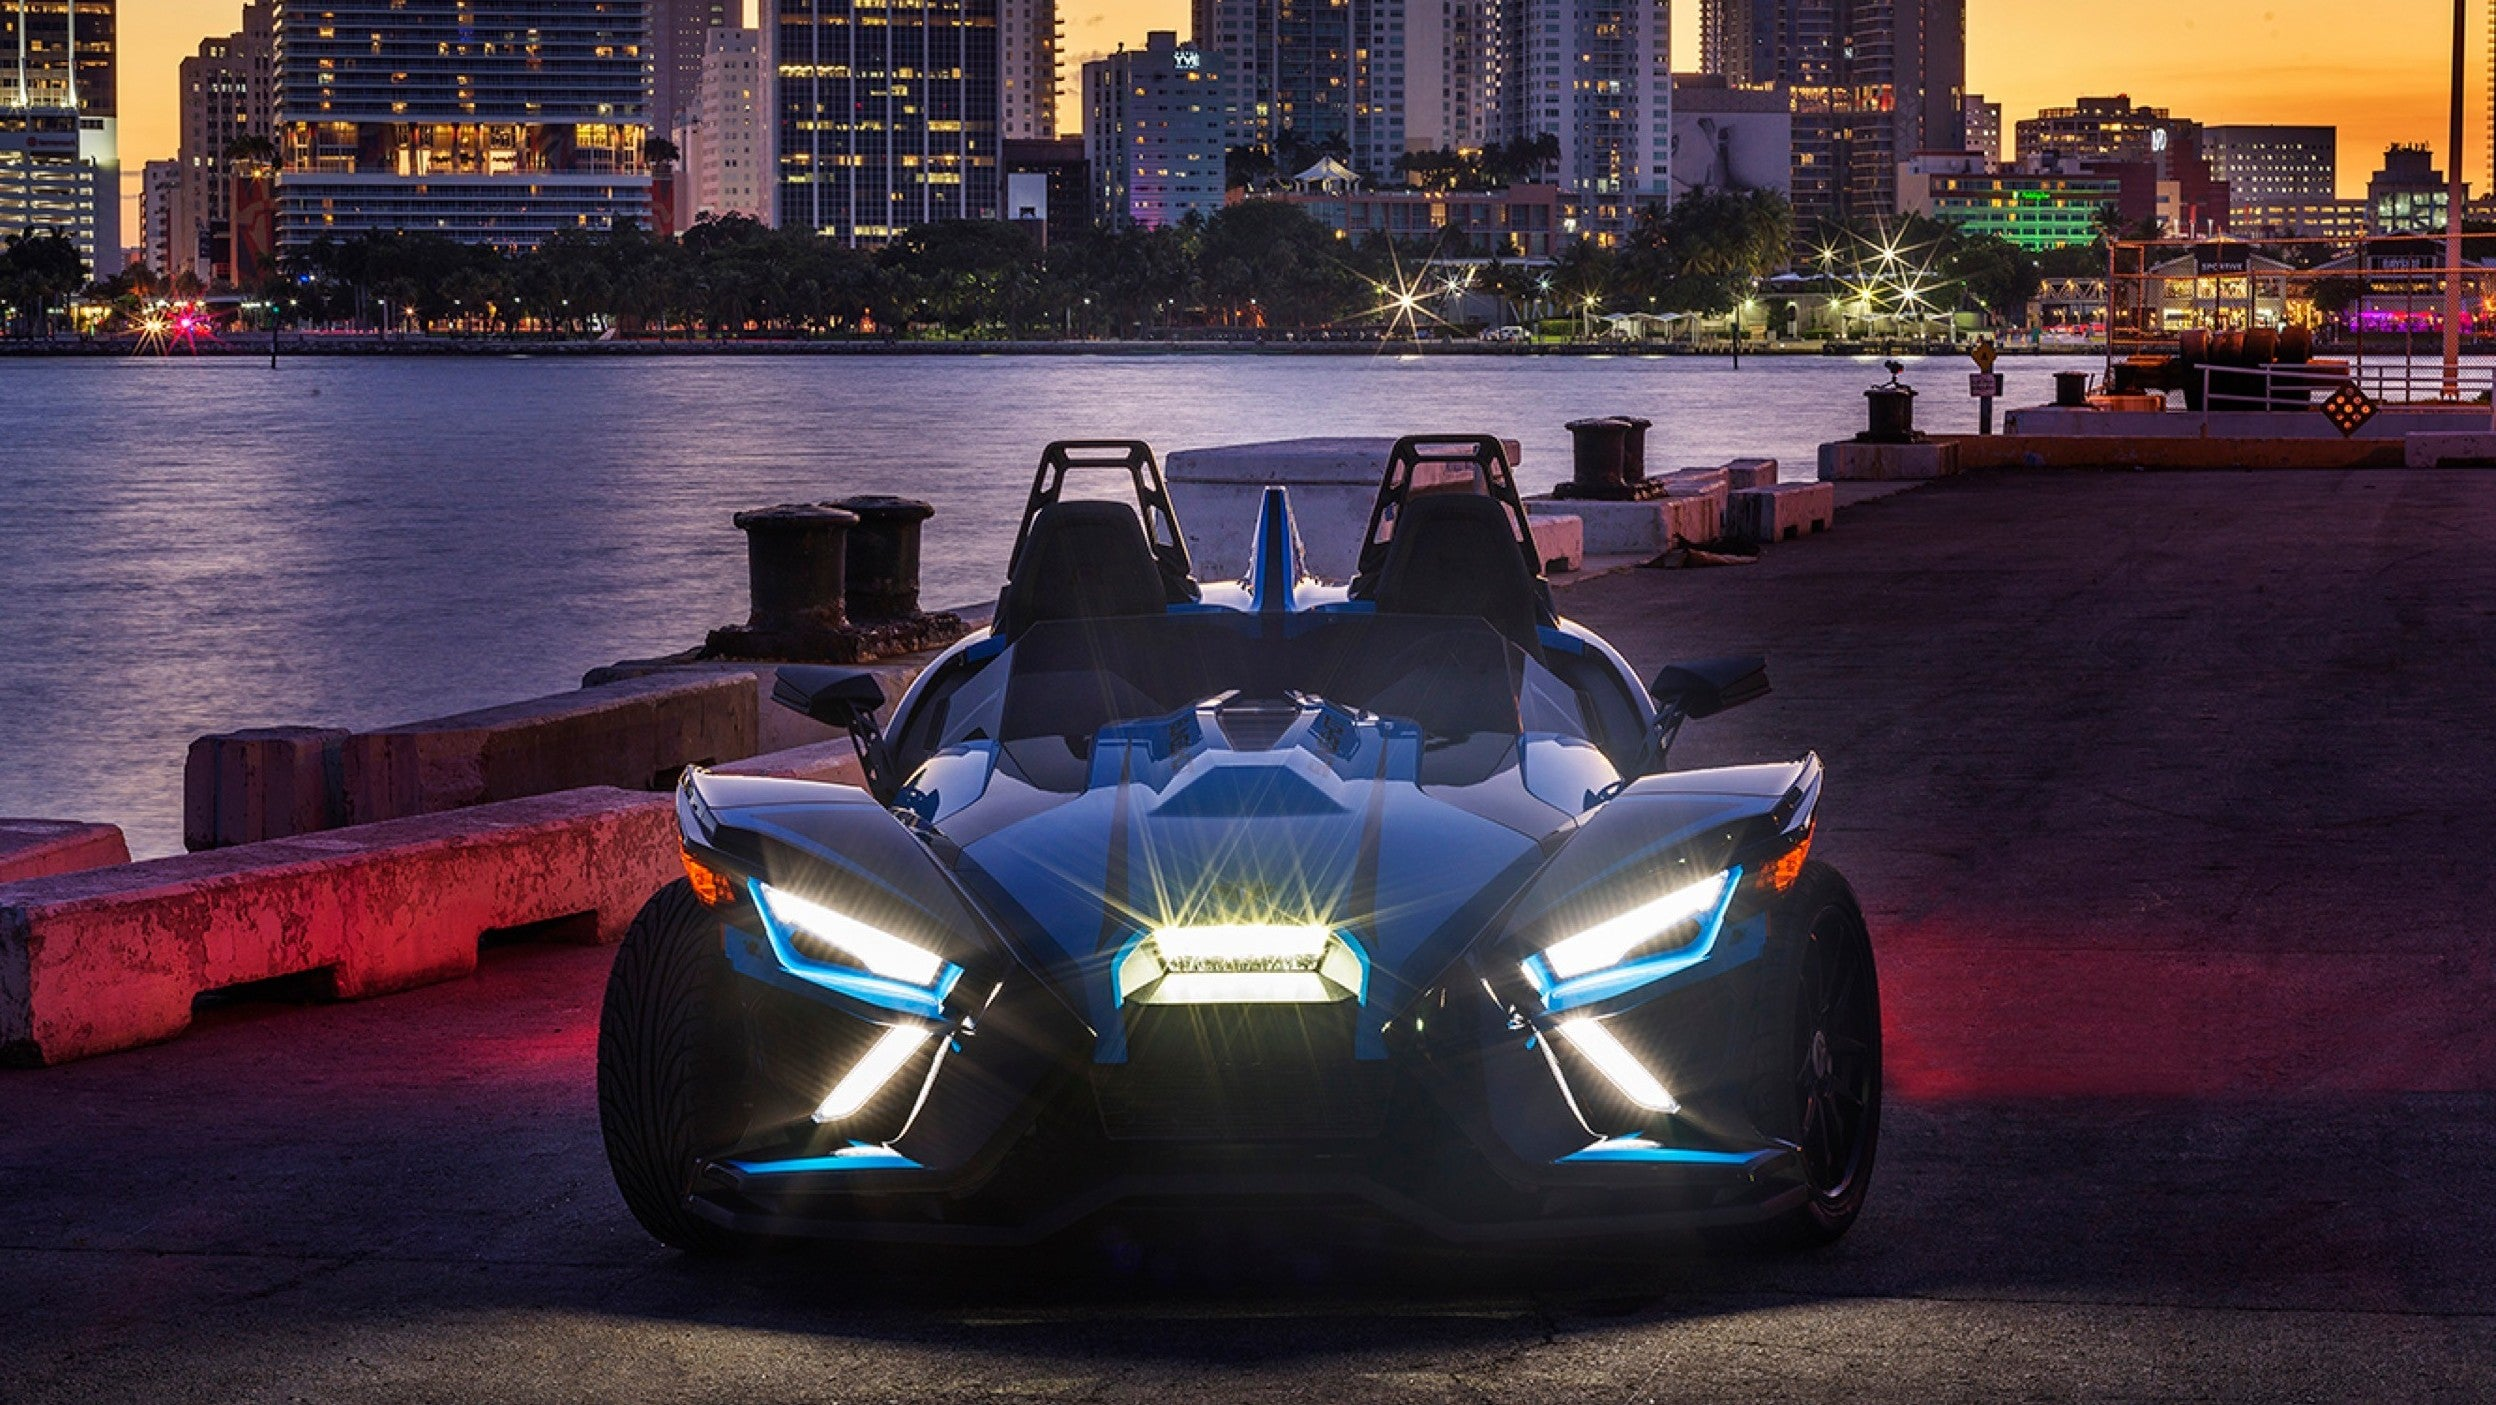 The 2020 Polaris Slingshot Has A New 203-Horsepower Engine And An Optional Automatic